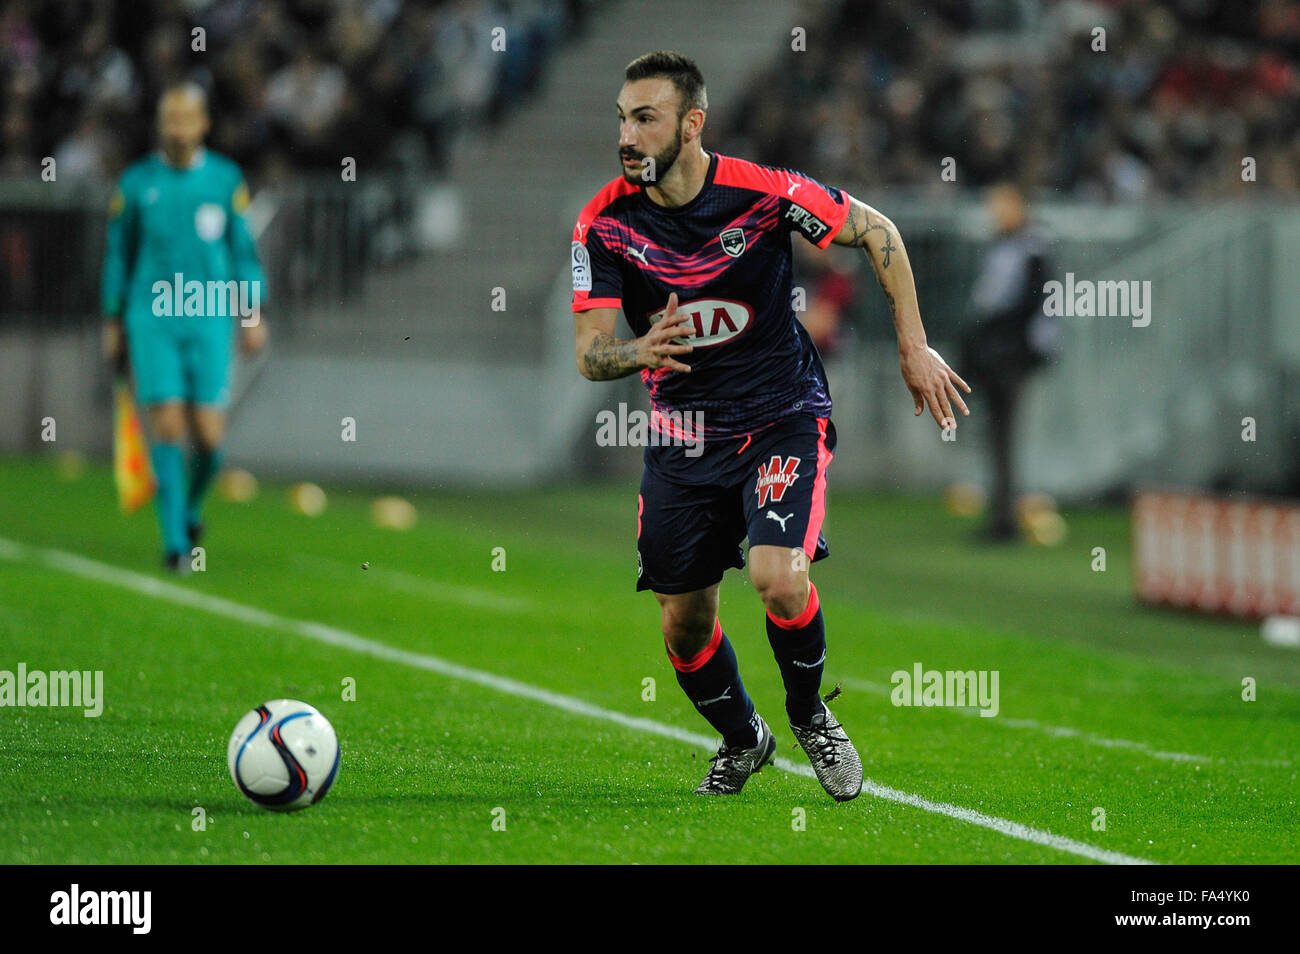 Bordeaux, Francia. Xx Dec, 2015. Stade Bordeaux Atlantique. French League calcio 1. Bordeaux rispetto a Marsiglia. Foto Stock